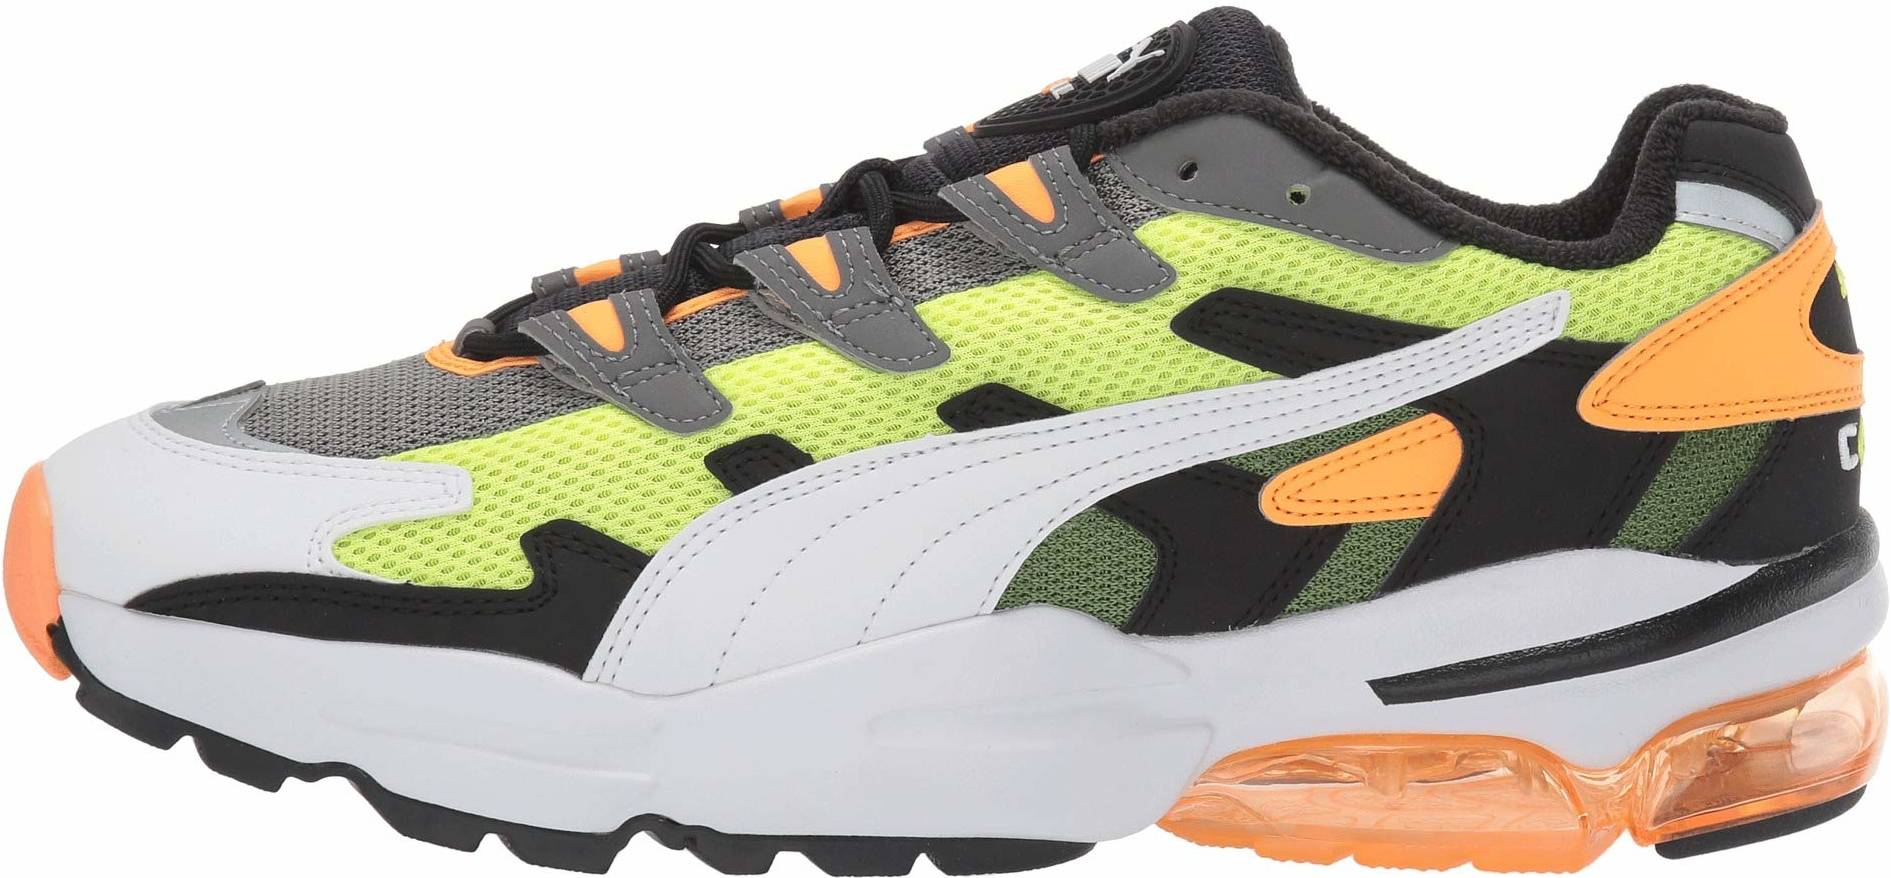 Puma CELL Alien OG sneakers in 8 colors (only $30) | RunRepeat